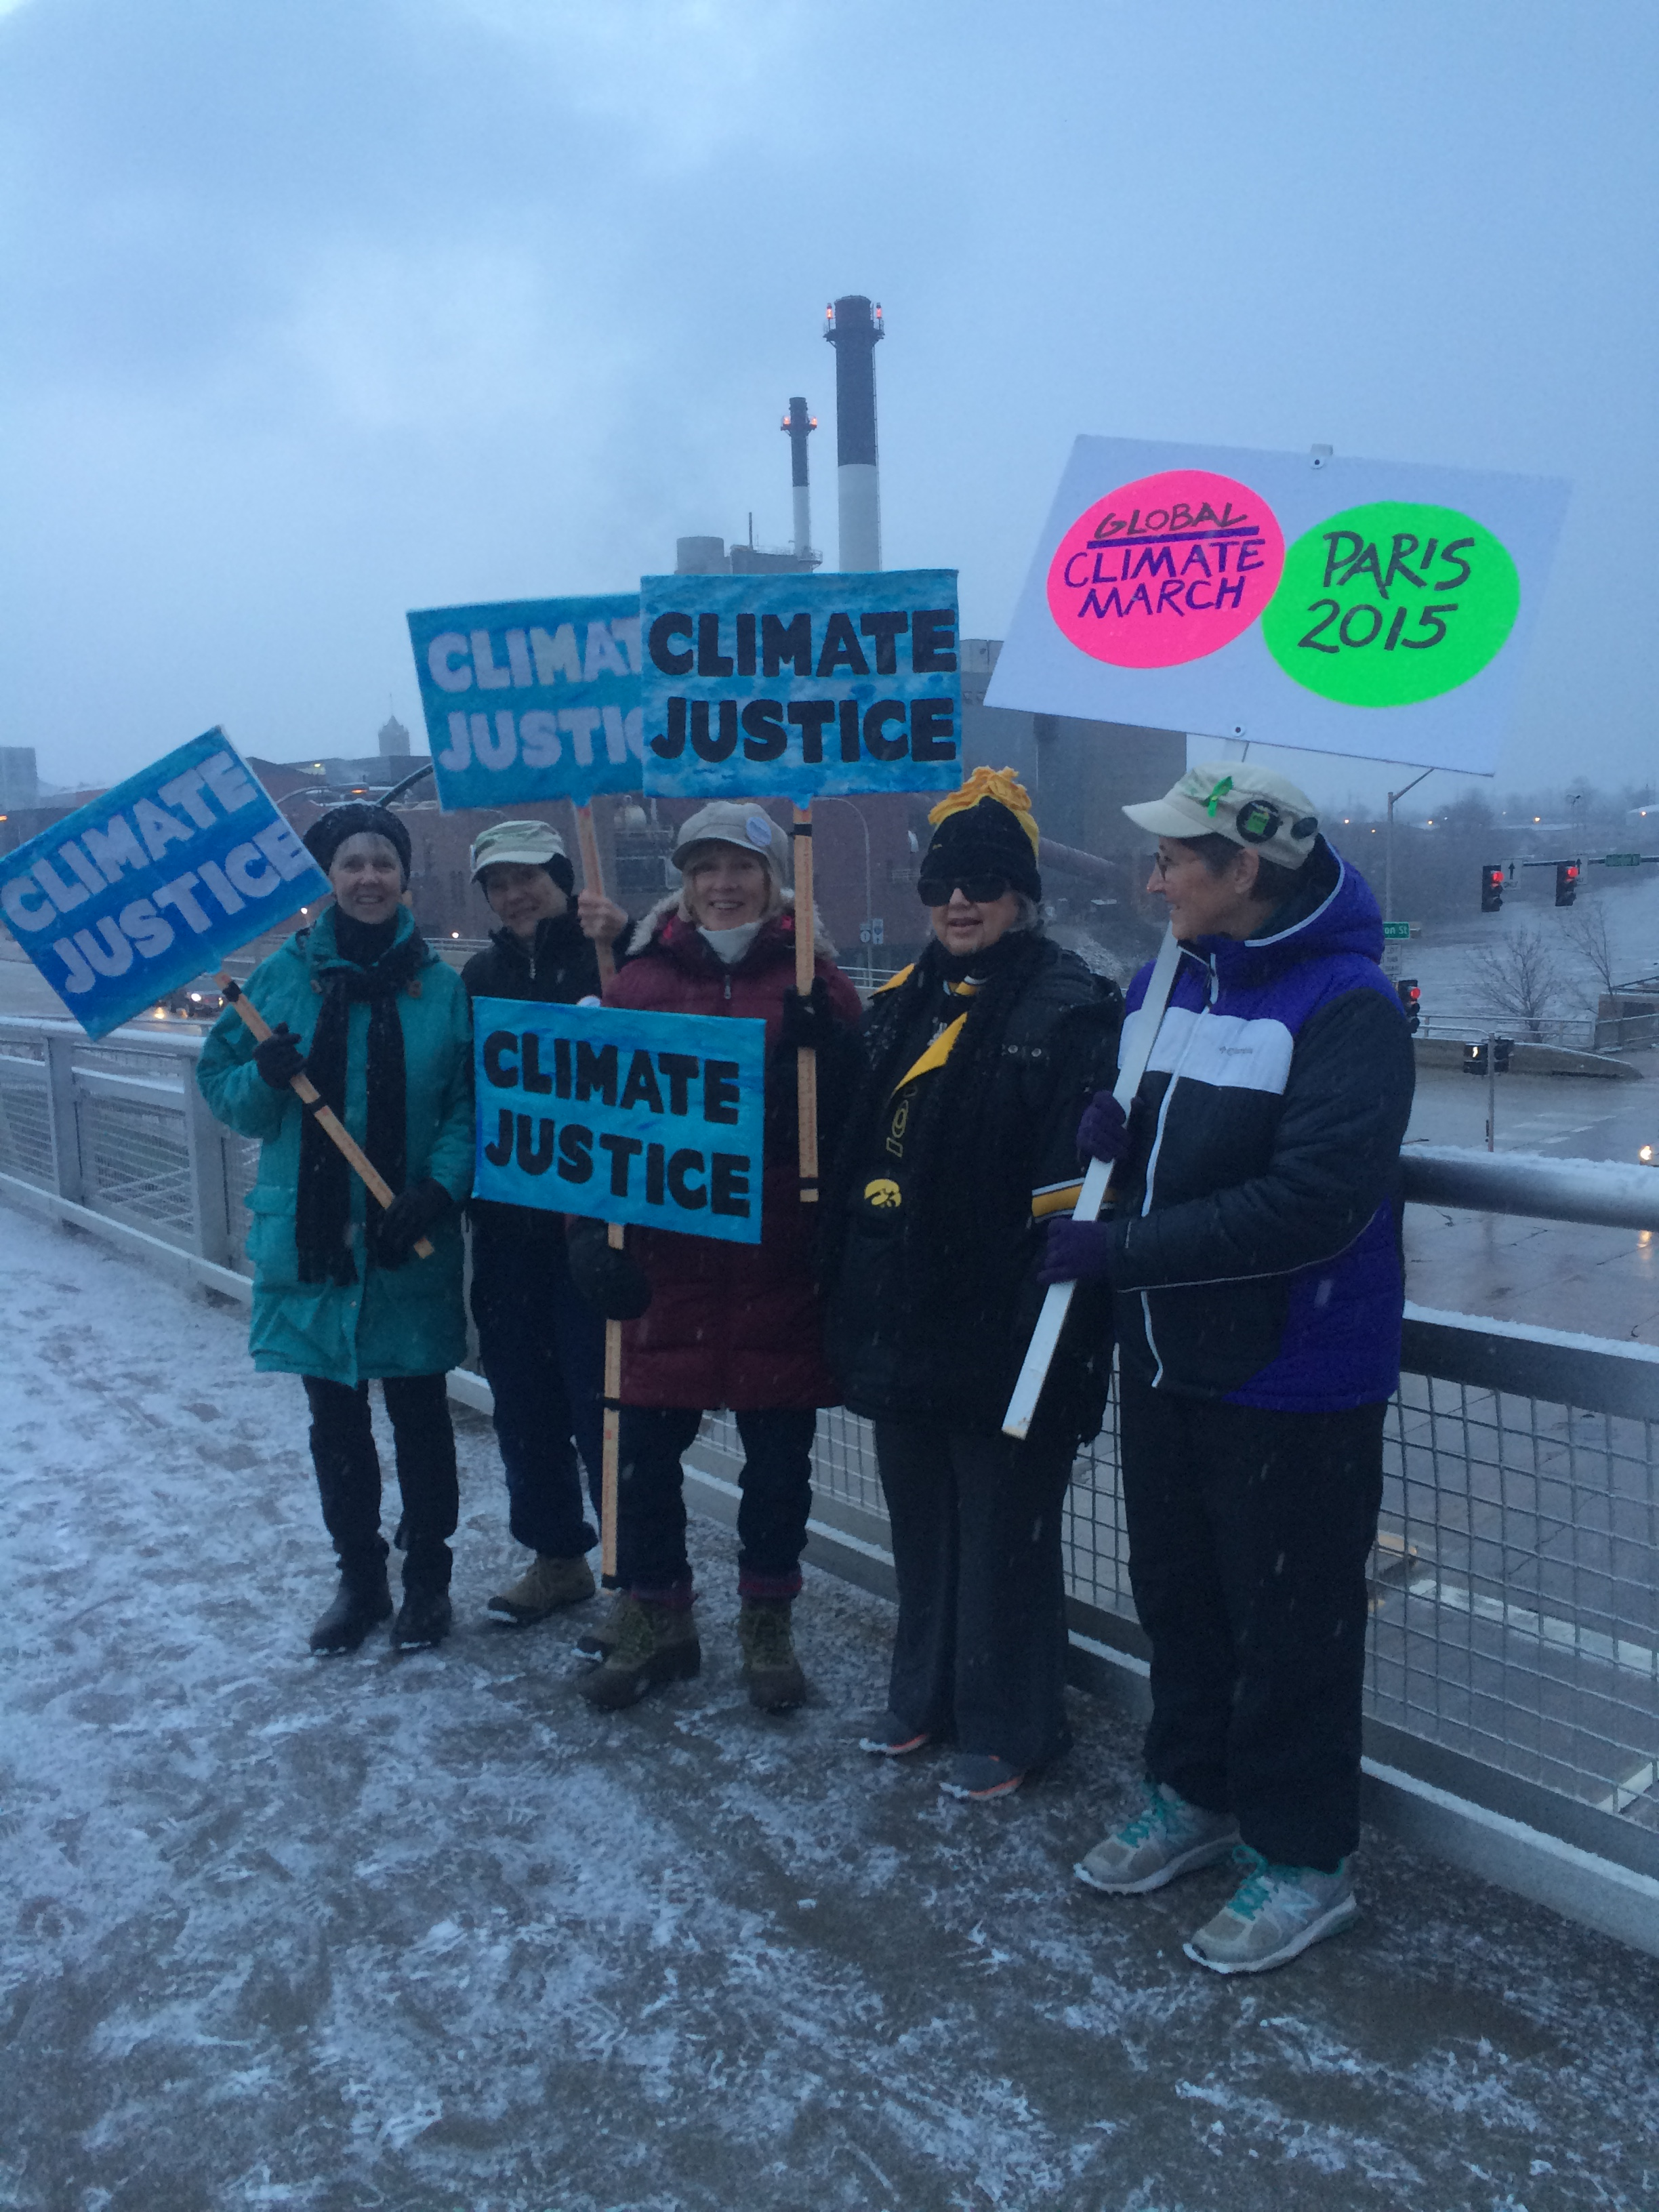 Climate Justice signs